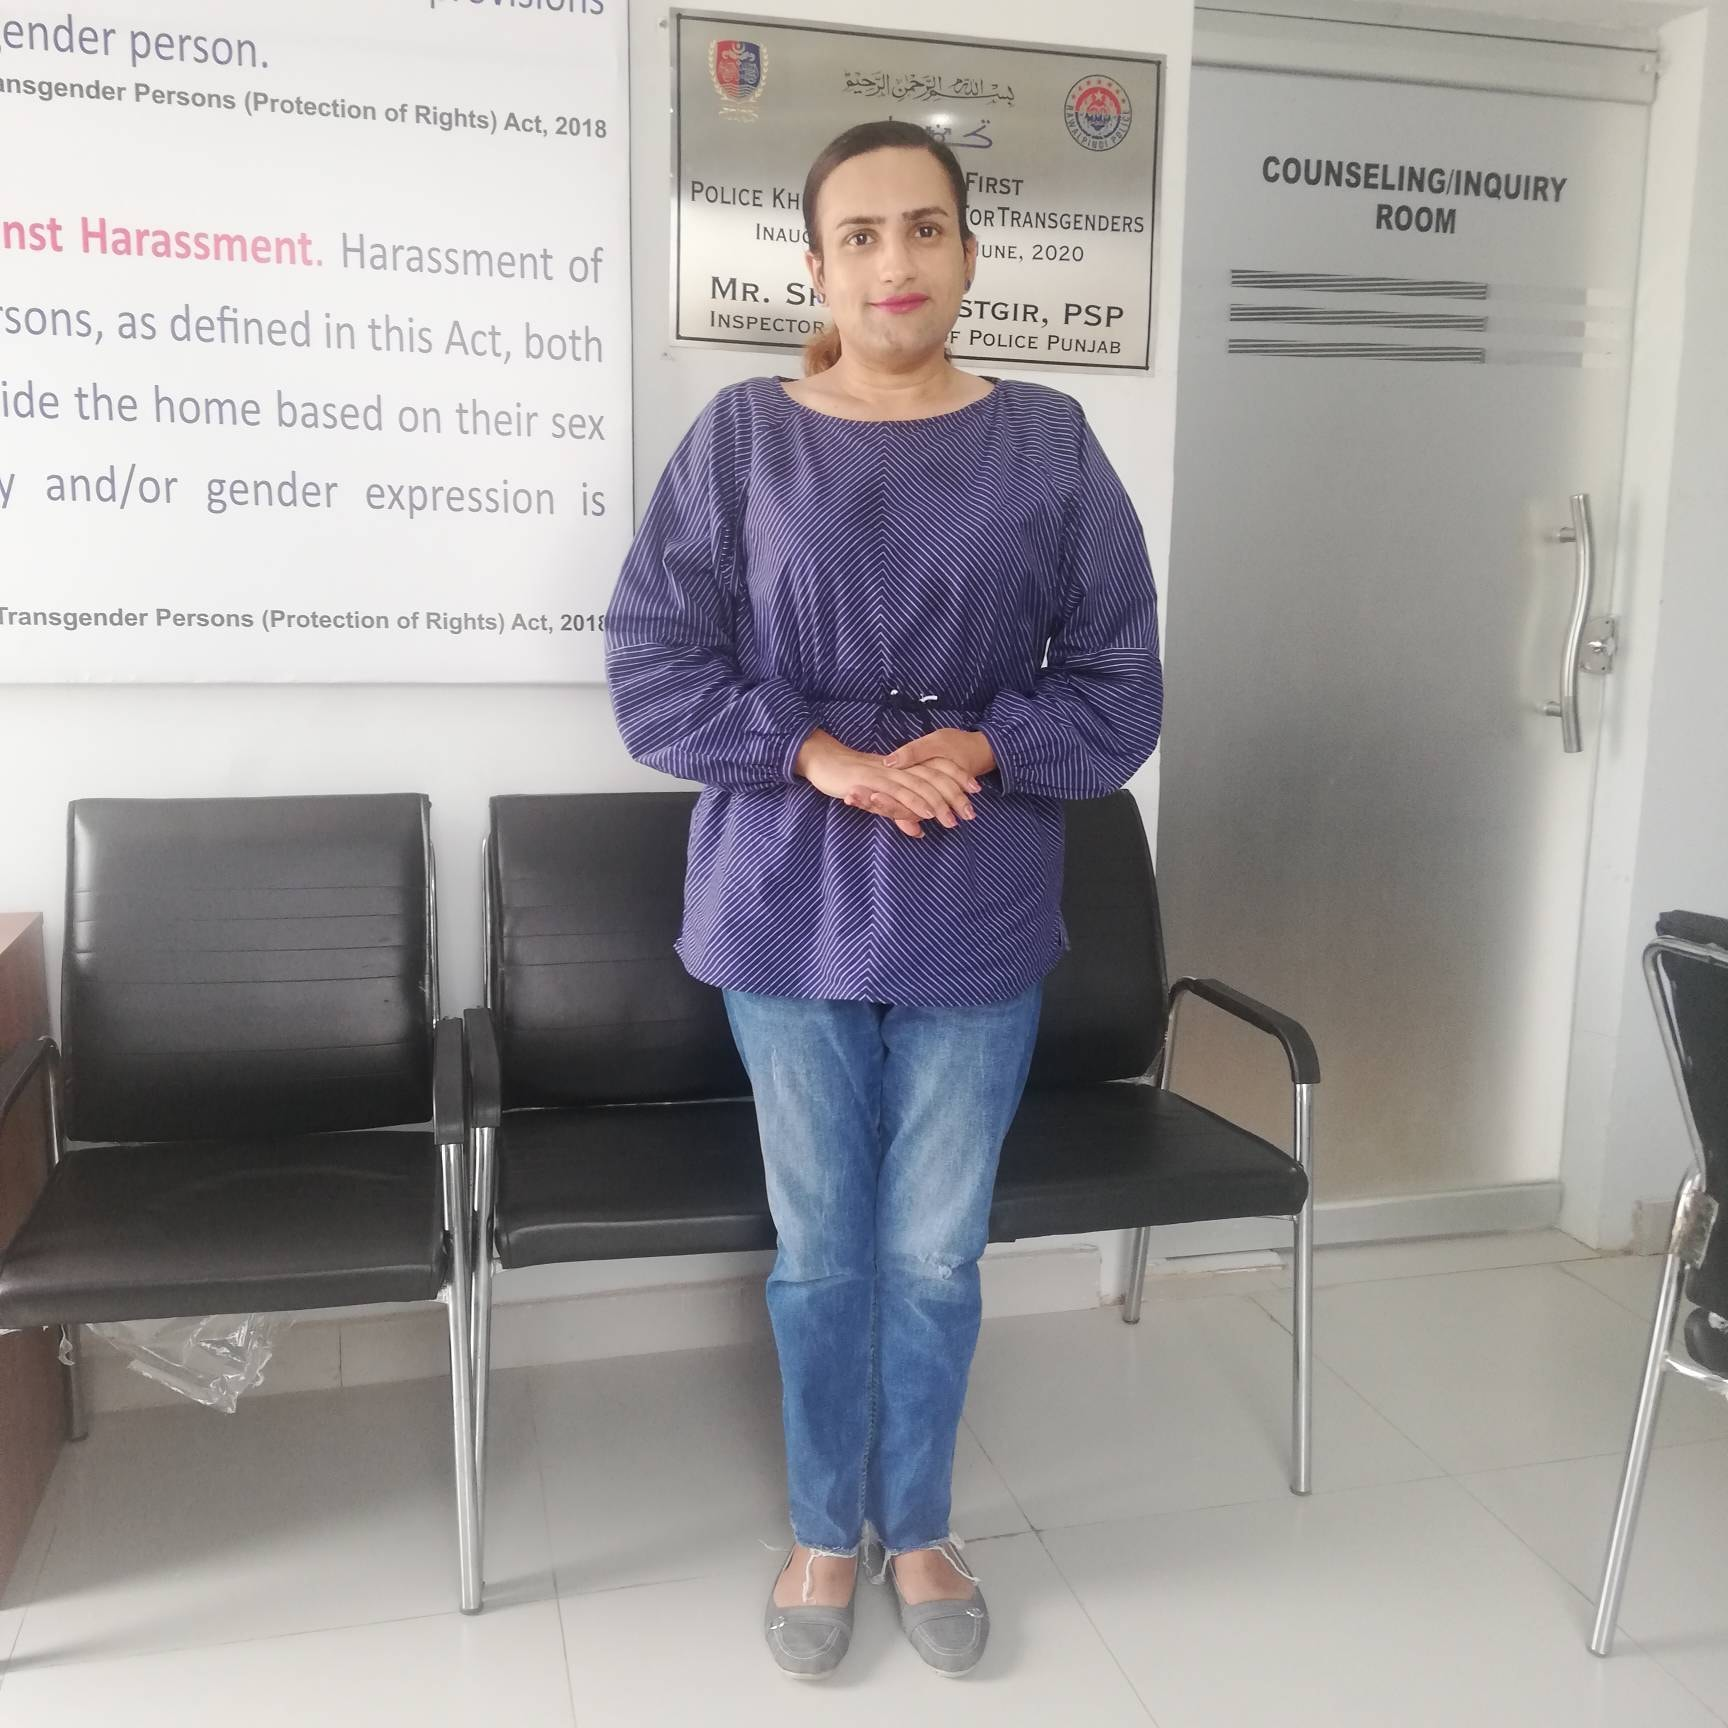 Reem Sharif, Pakistan's first transgender police officer, poses for a photo at her workplace in Punjab, Pakistan on July 1, 2020. Thomson Reuters Foundation/Handout by Reem Sharif